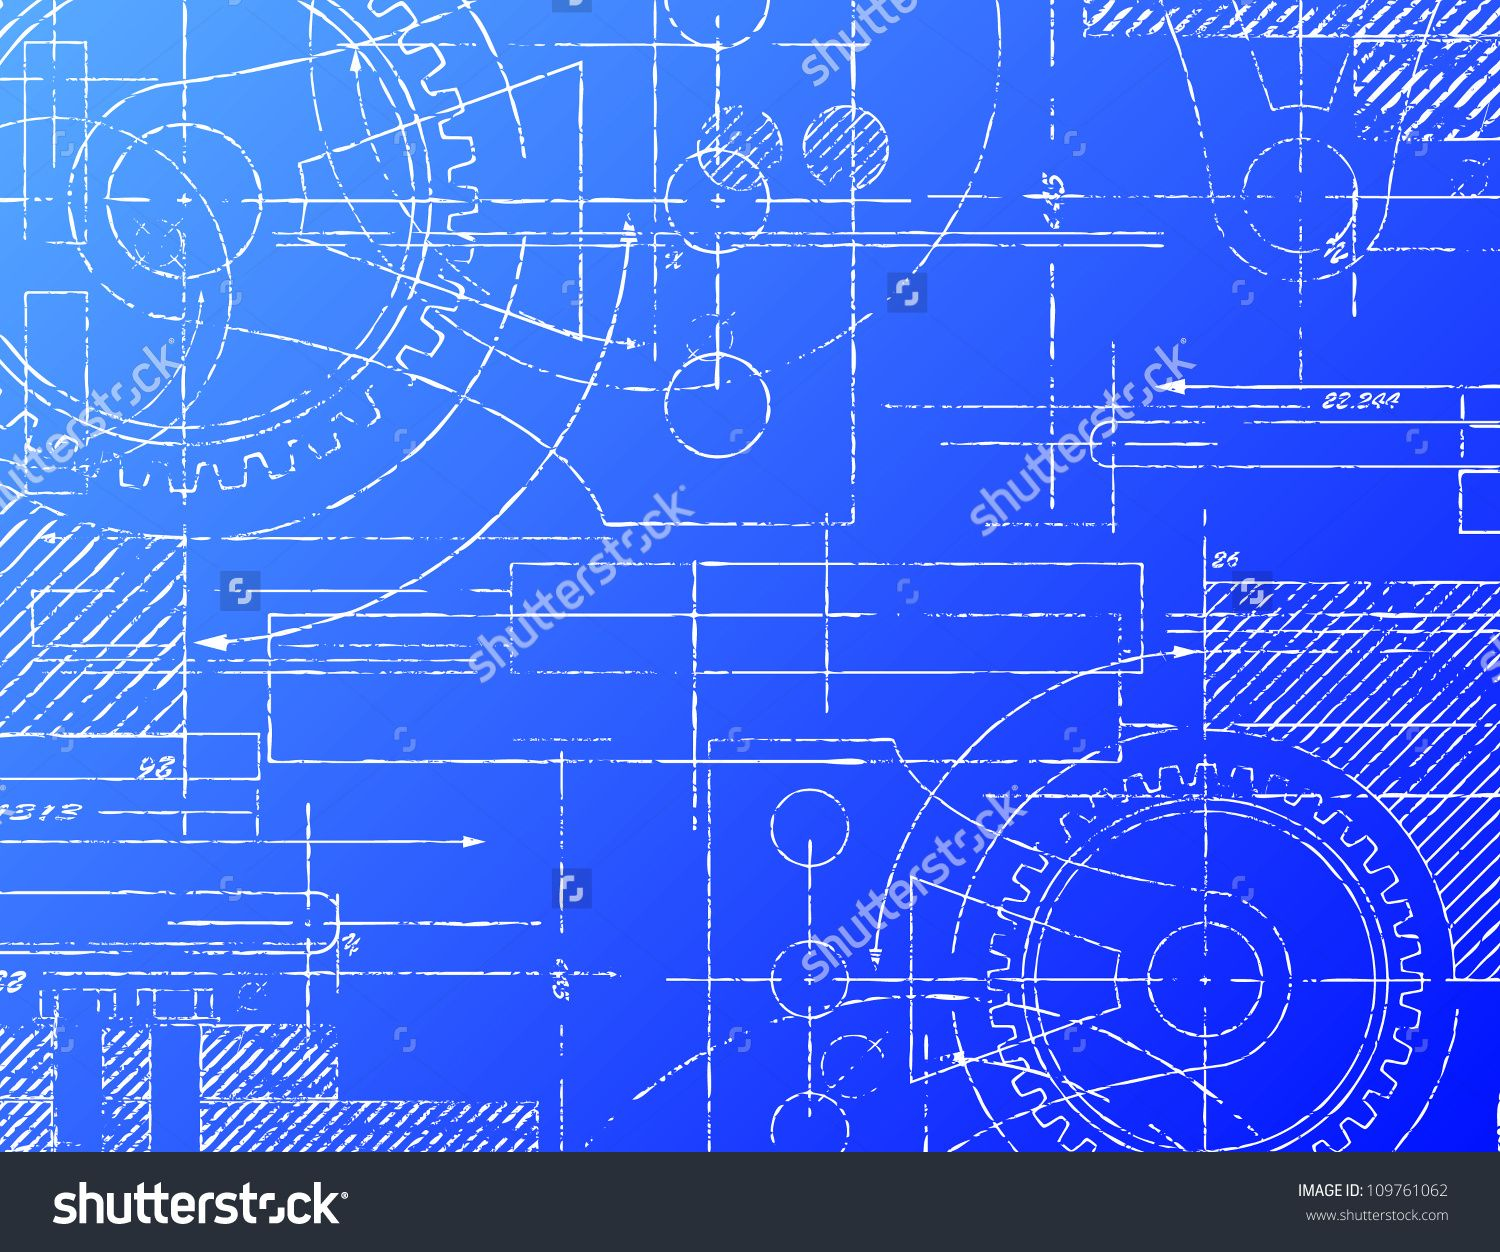 Rolled house blueprints and construction plans stock photo rolled house blueprints and construction plans stock photo blueprint pinterest image vector images photos and royalty free images malvernweather Images